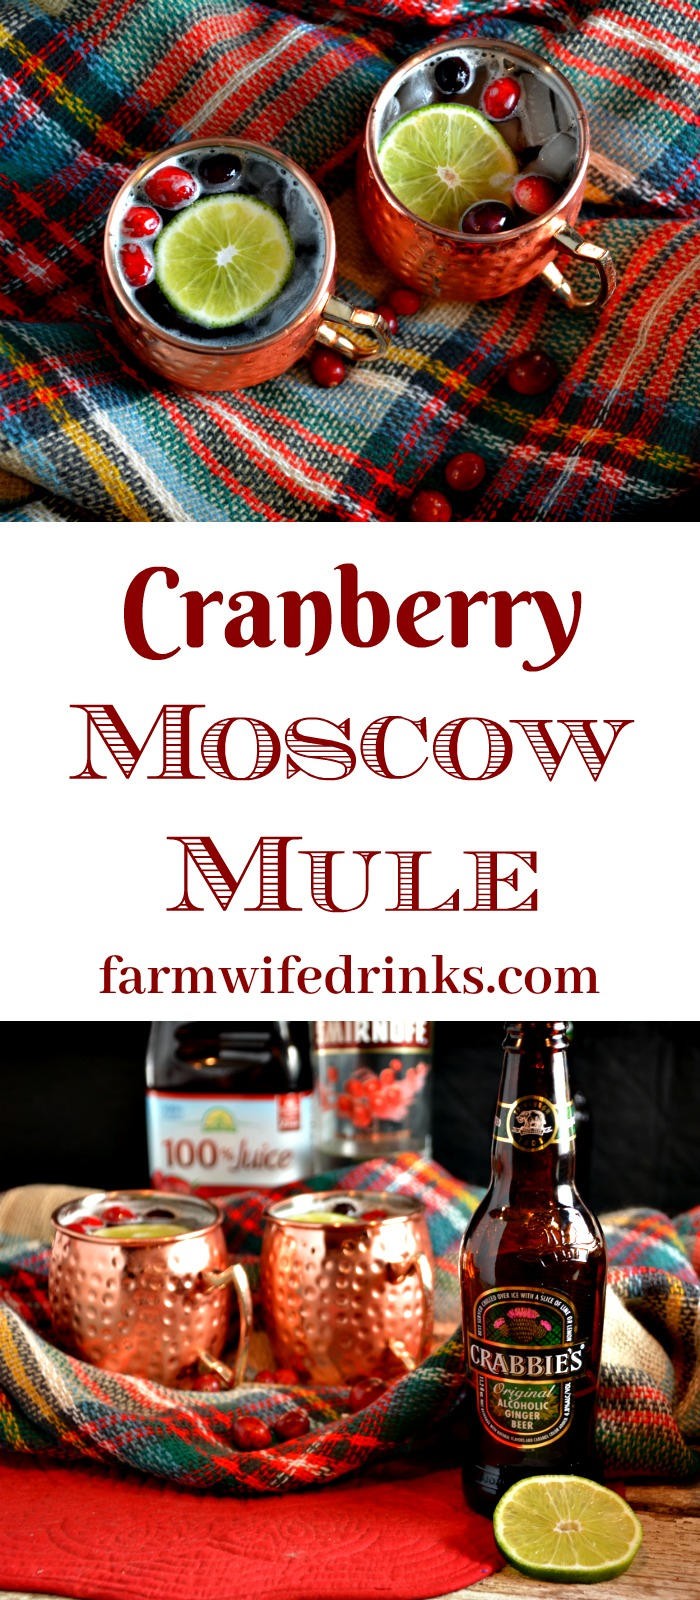 If you love a good Moscow Mule, these cranberry Moscow Mules are perfect for Christmas and a drink you will end up drinking all year long.